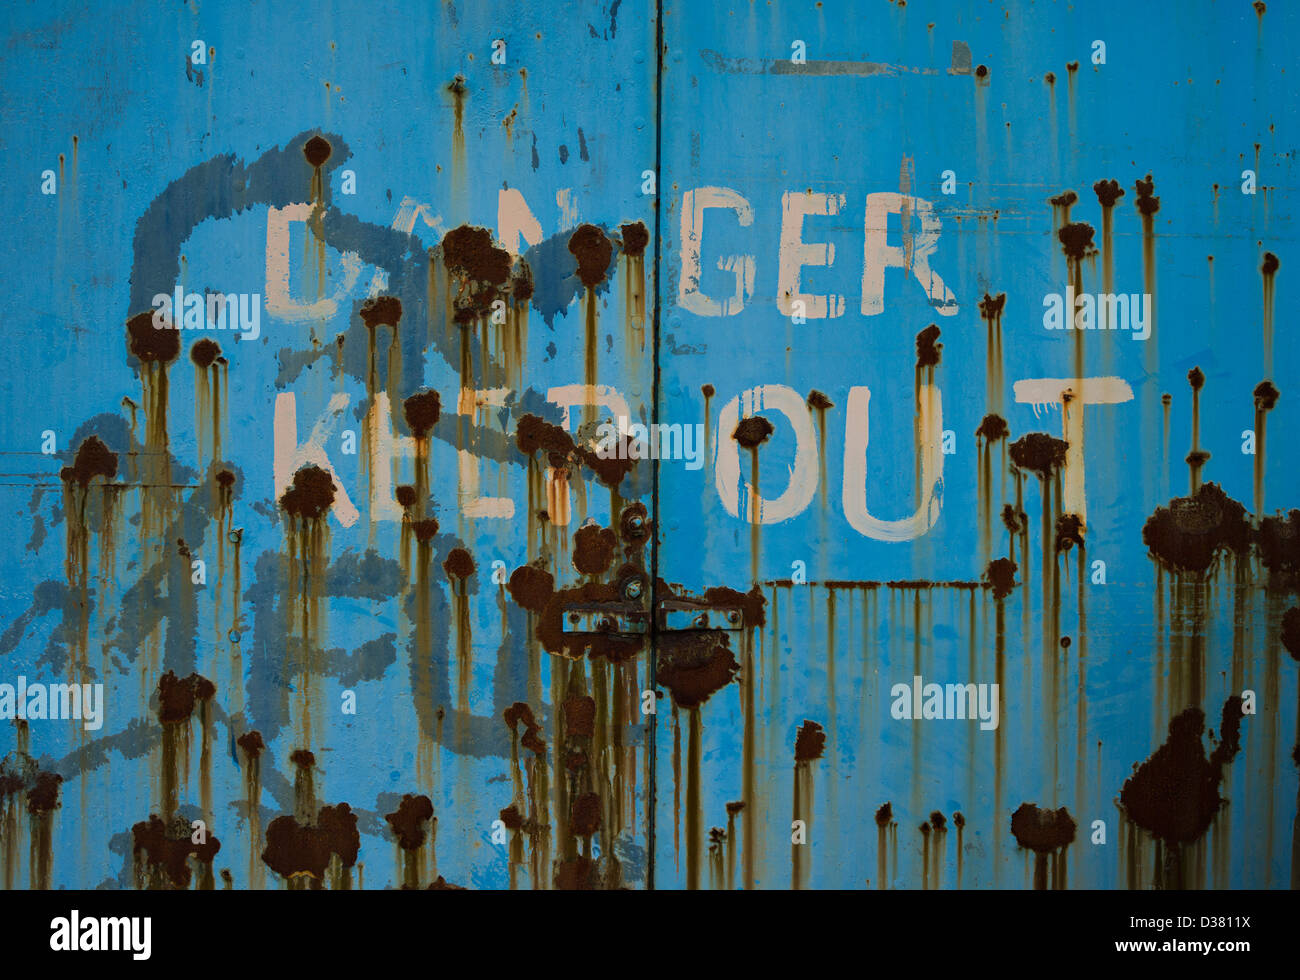 'Danger Keep Out' sign on blue door with rust patches, Oban, Argyll, Scotland - Stock Image